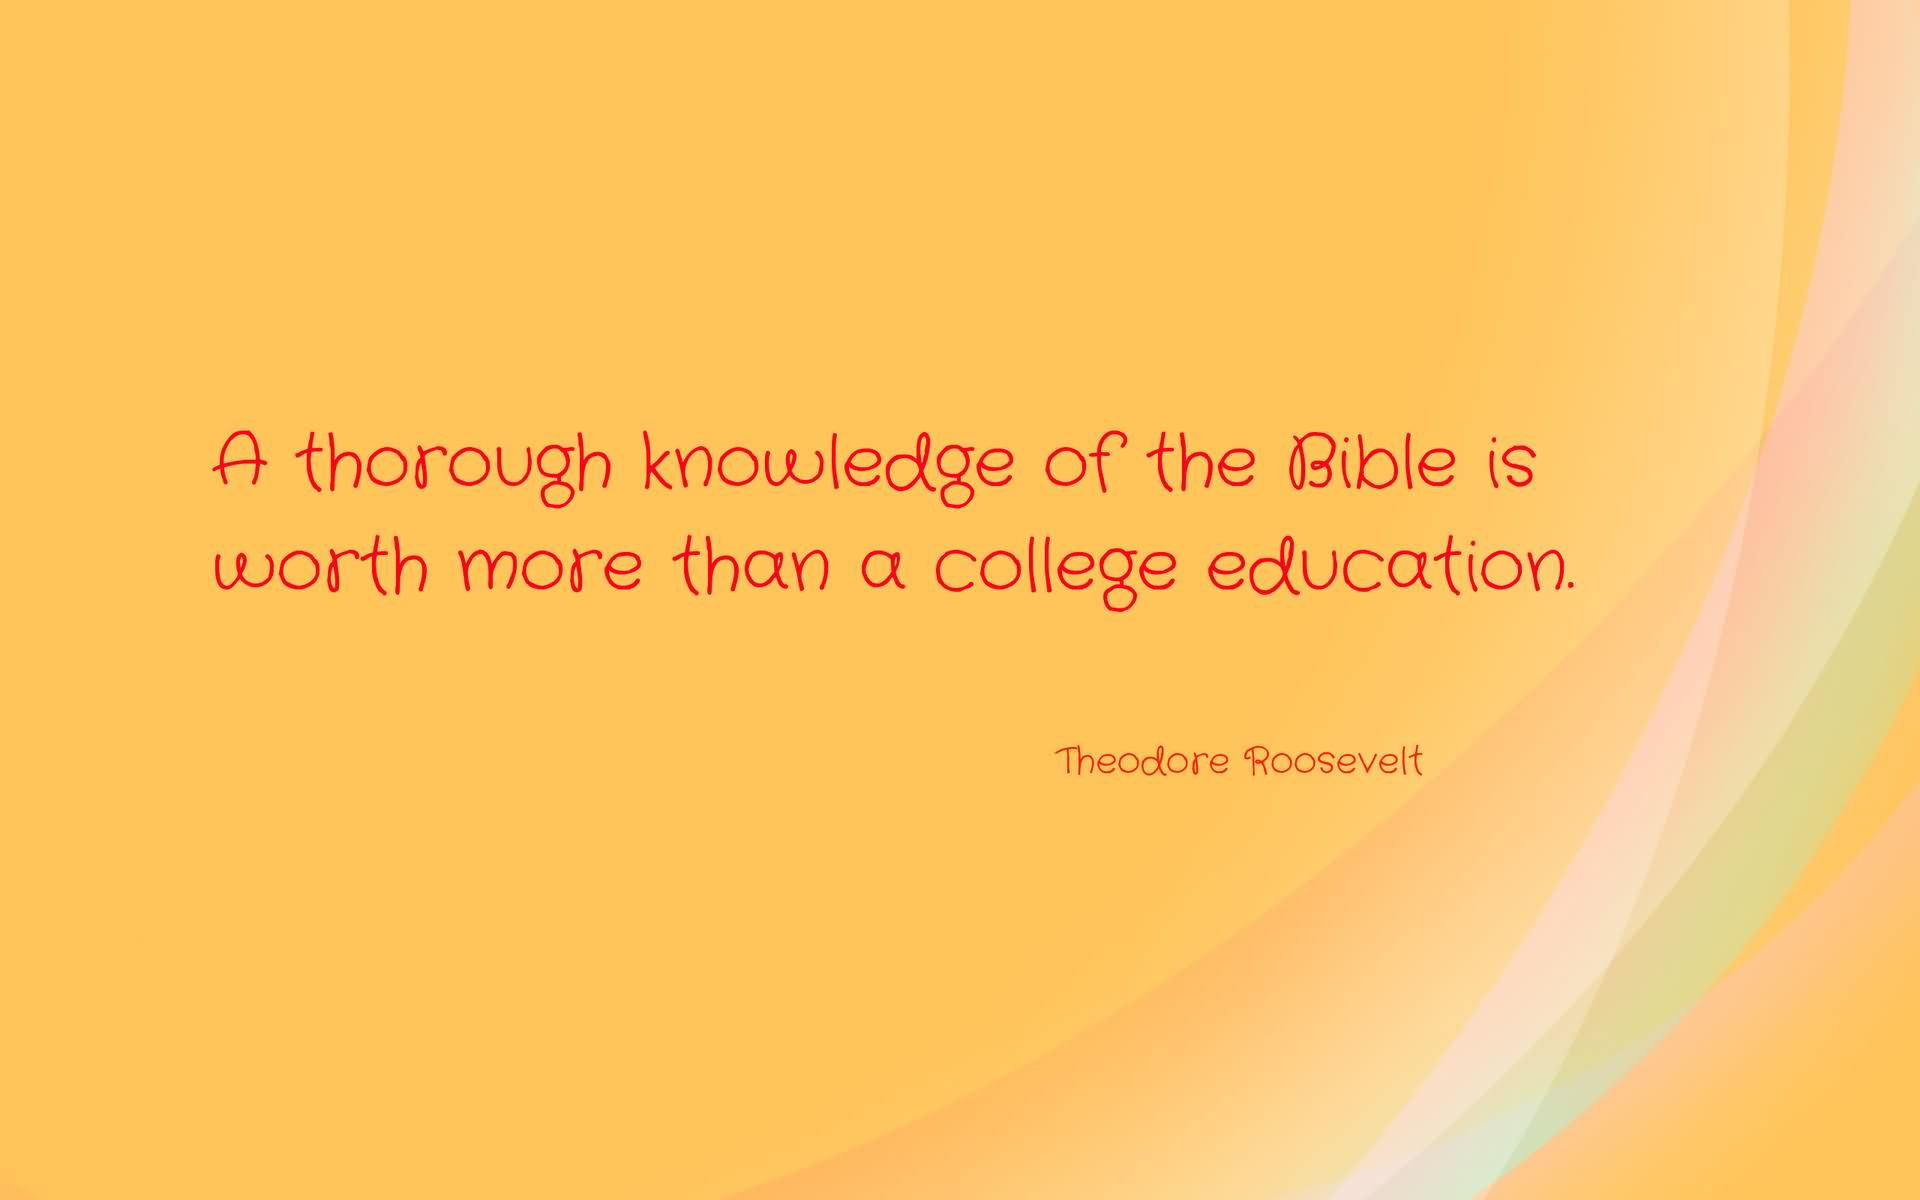 A Through Knowledge Of The Bible Is Worth More Than A College Education